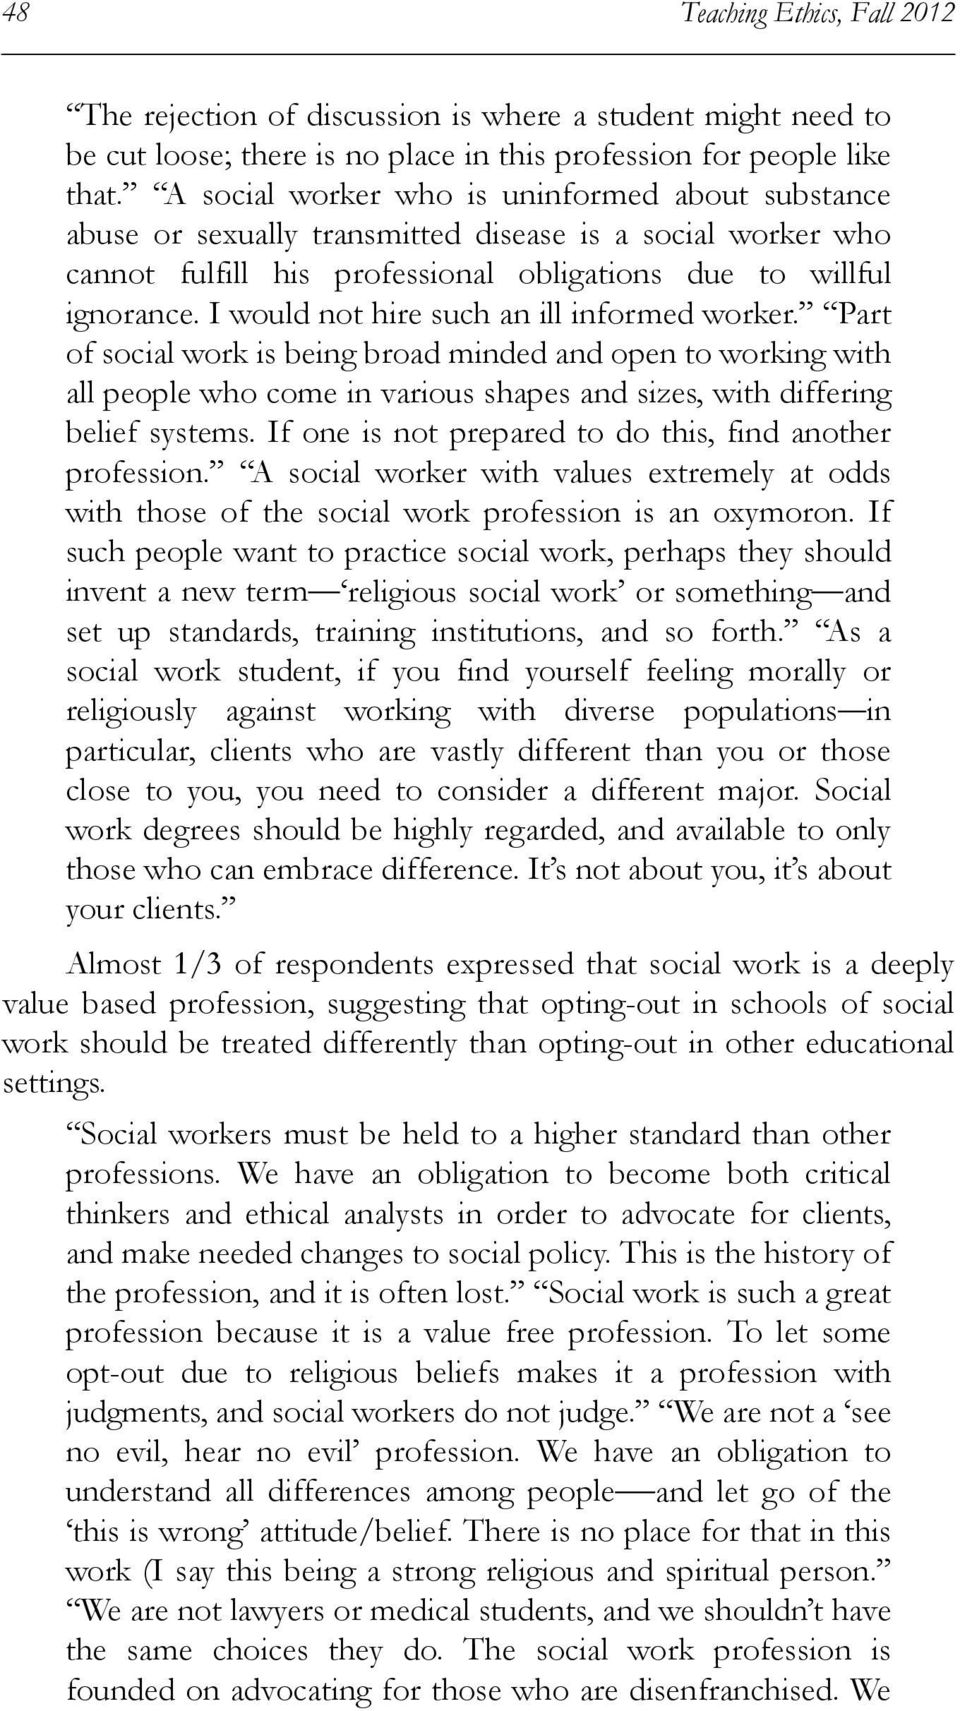 I would not hire such an ill informed worker. Part of social work is being broad minded and open to working with all people who come in various shapes and sizes, with differing belief systems.